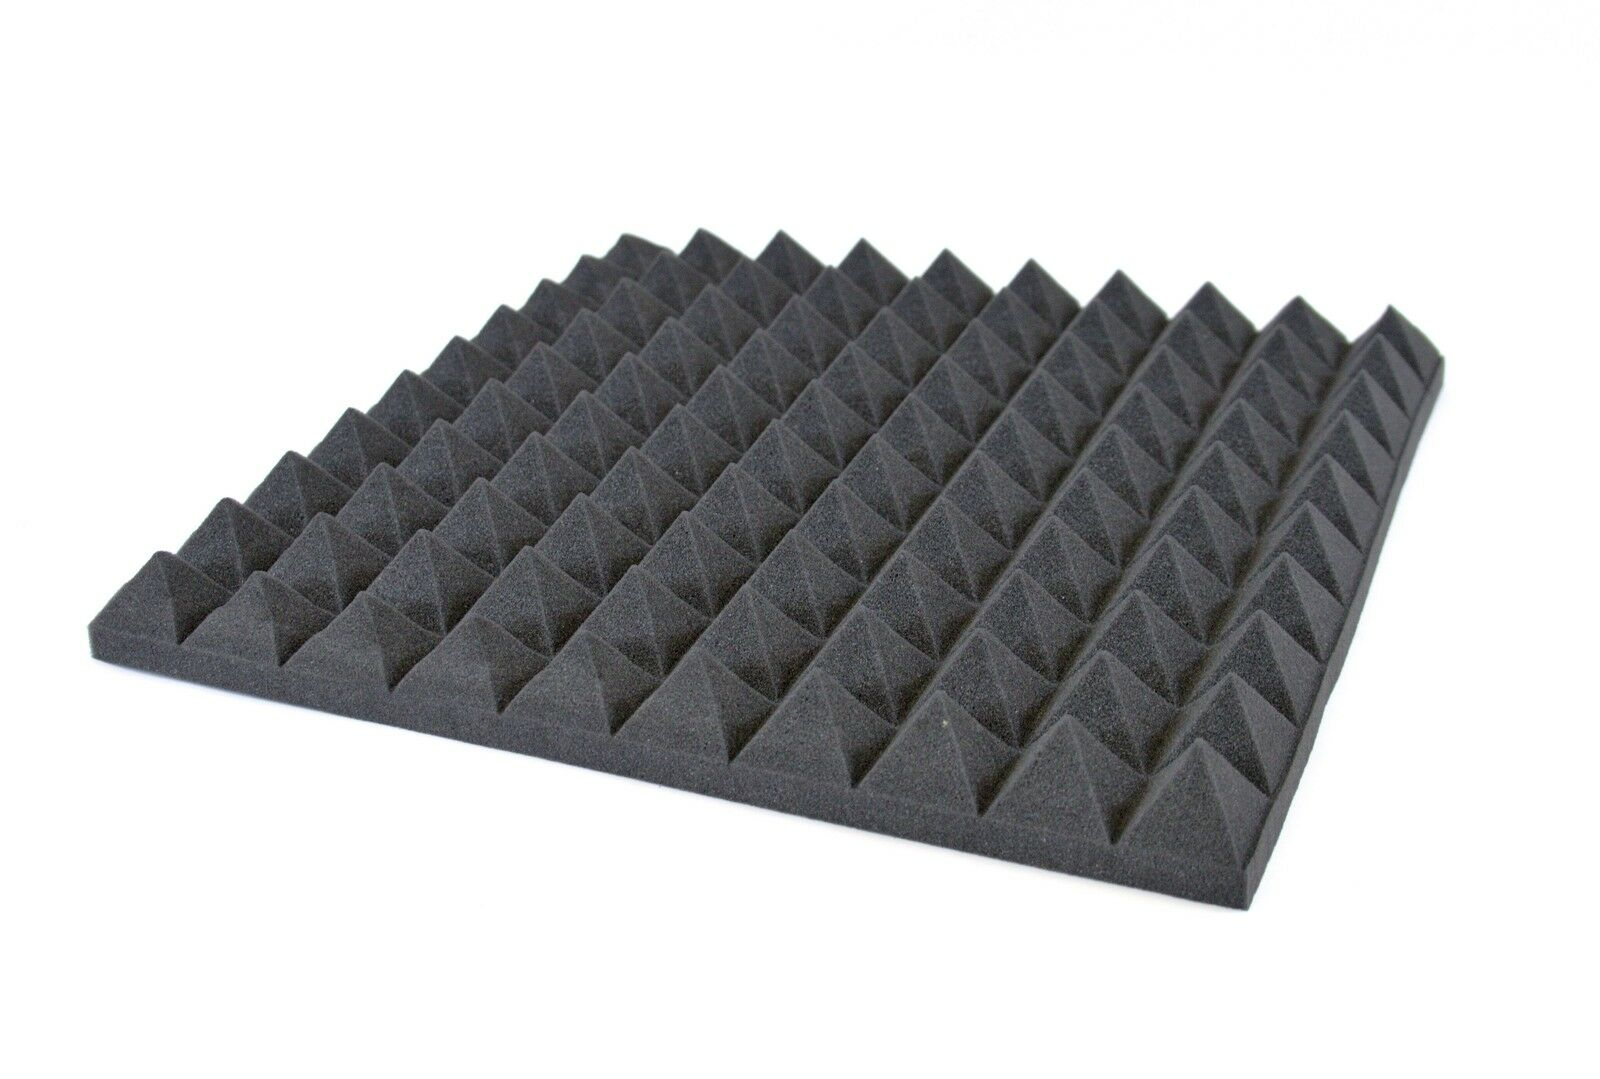 8x Fire Proof Acoustic Treatment Studio Music Foam SoundProofing 50 x 50cm grau